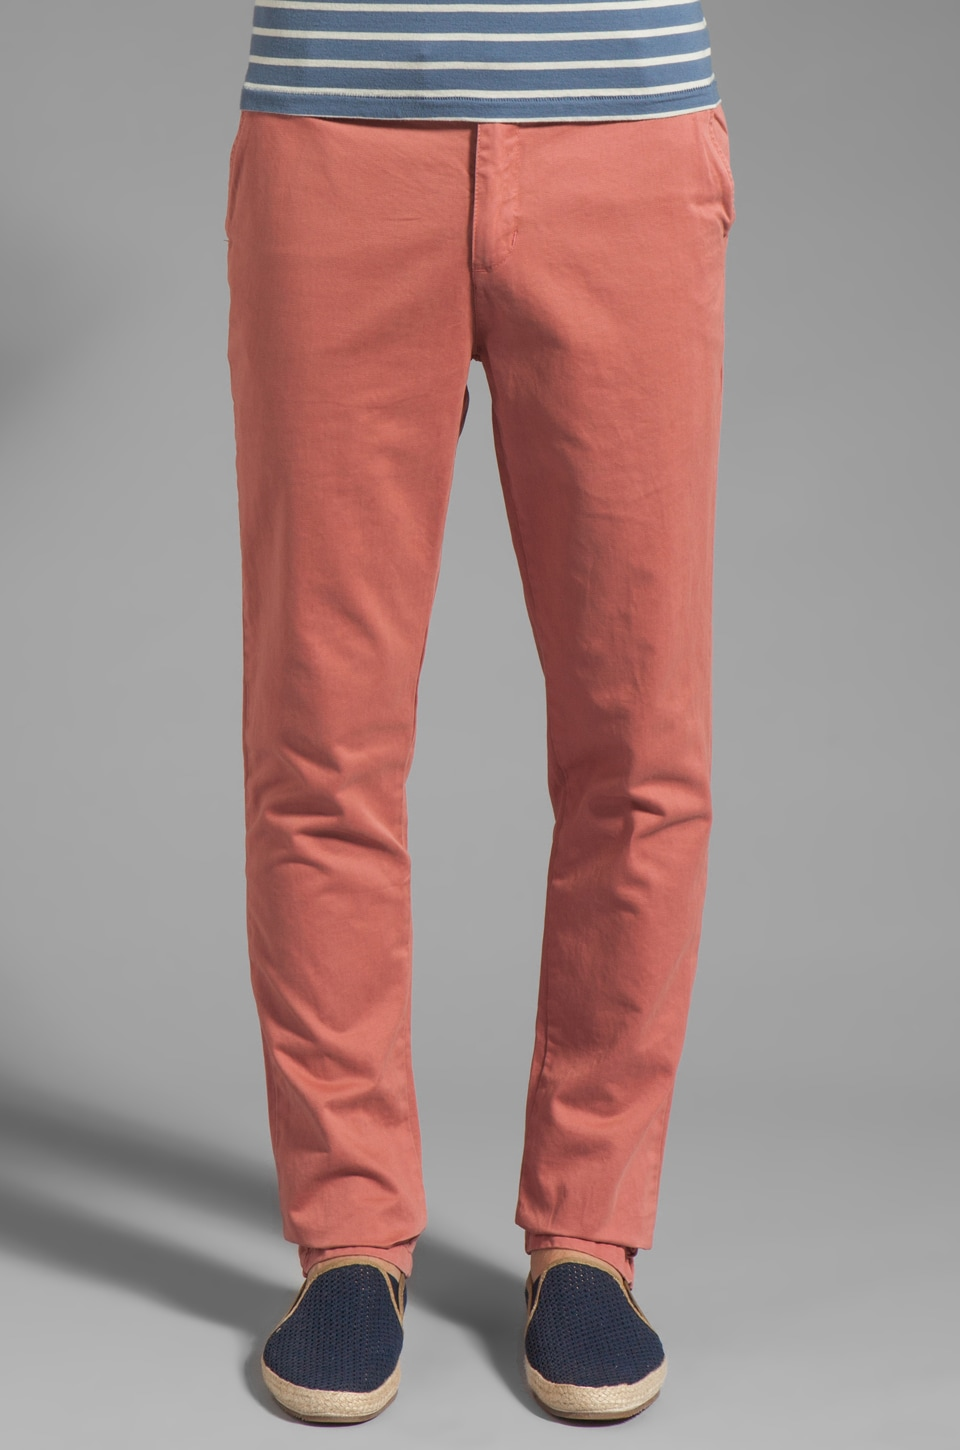 Vanishing Elephant Classic Chino In Salmon